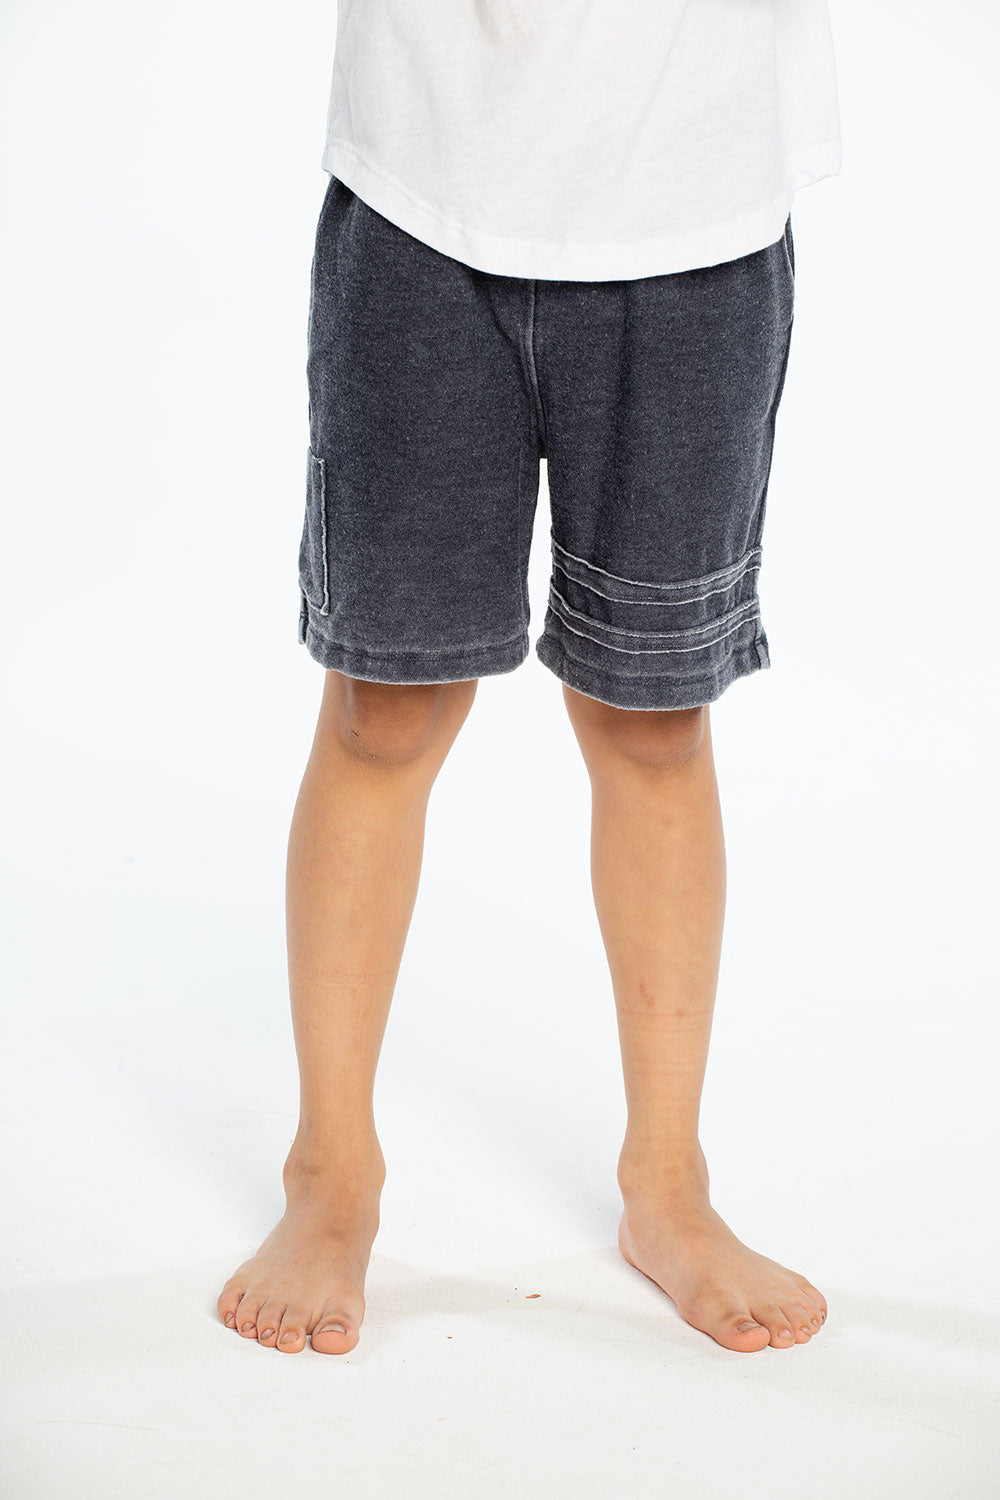 Cozy Knit Cargo Shorts W/ Strappings BOYS chaserbrand4.myshopify.com